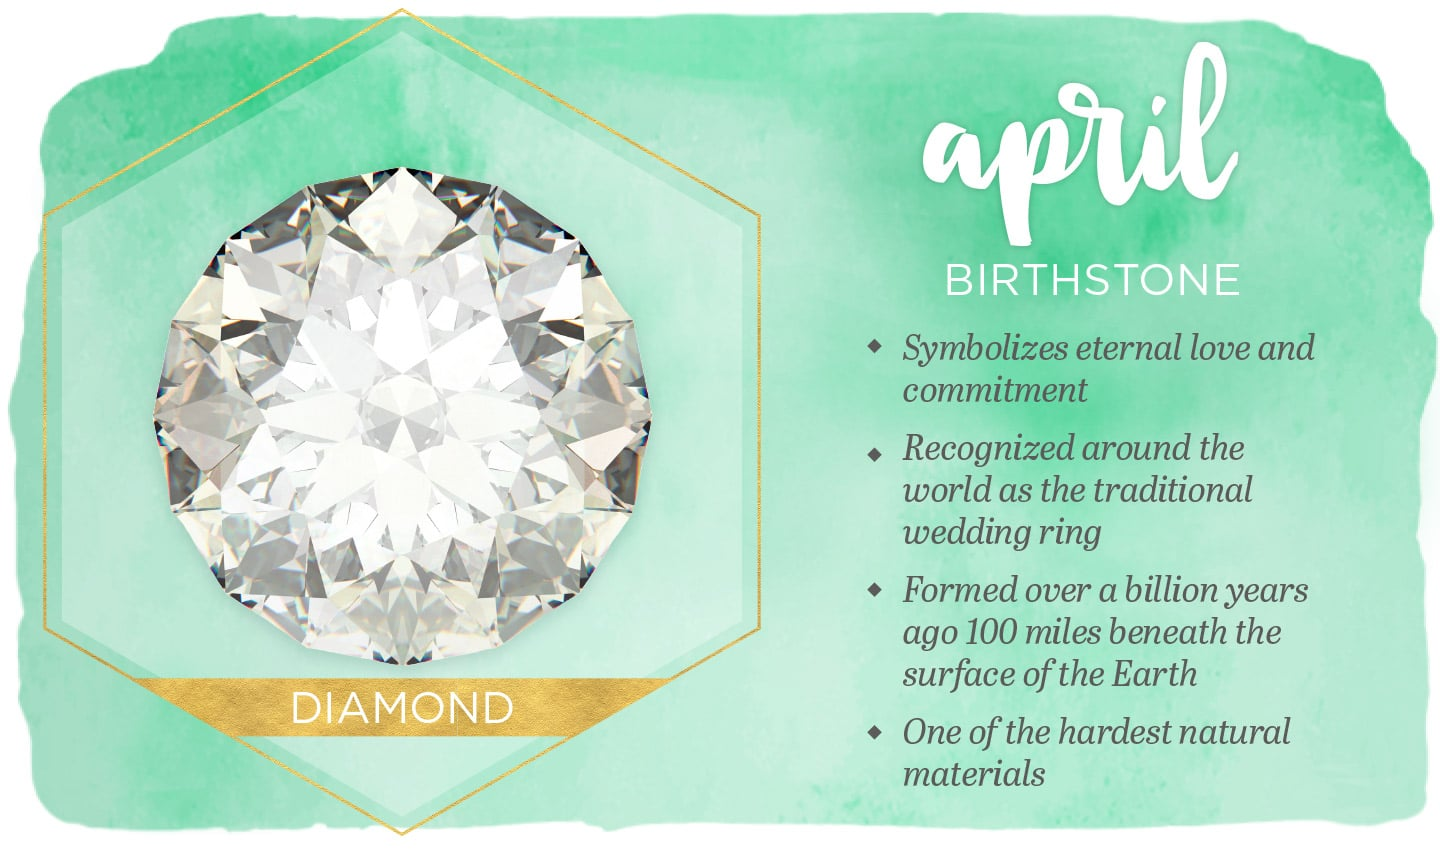 April Birthstone Images